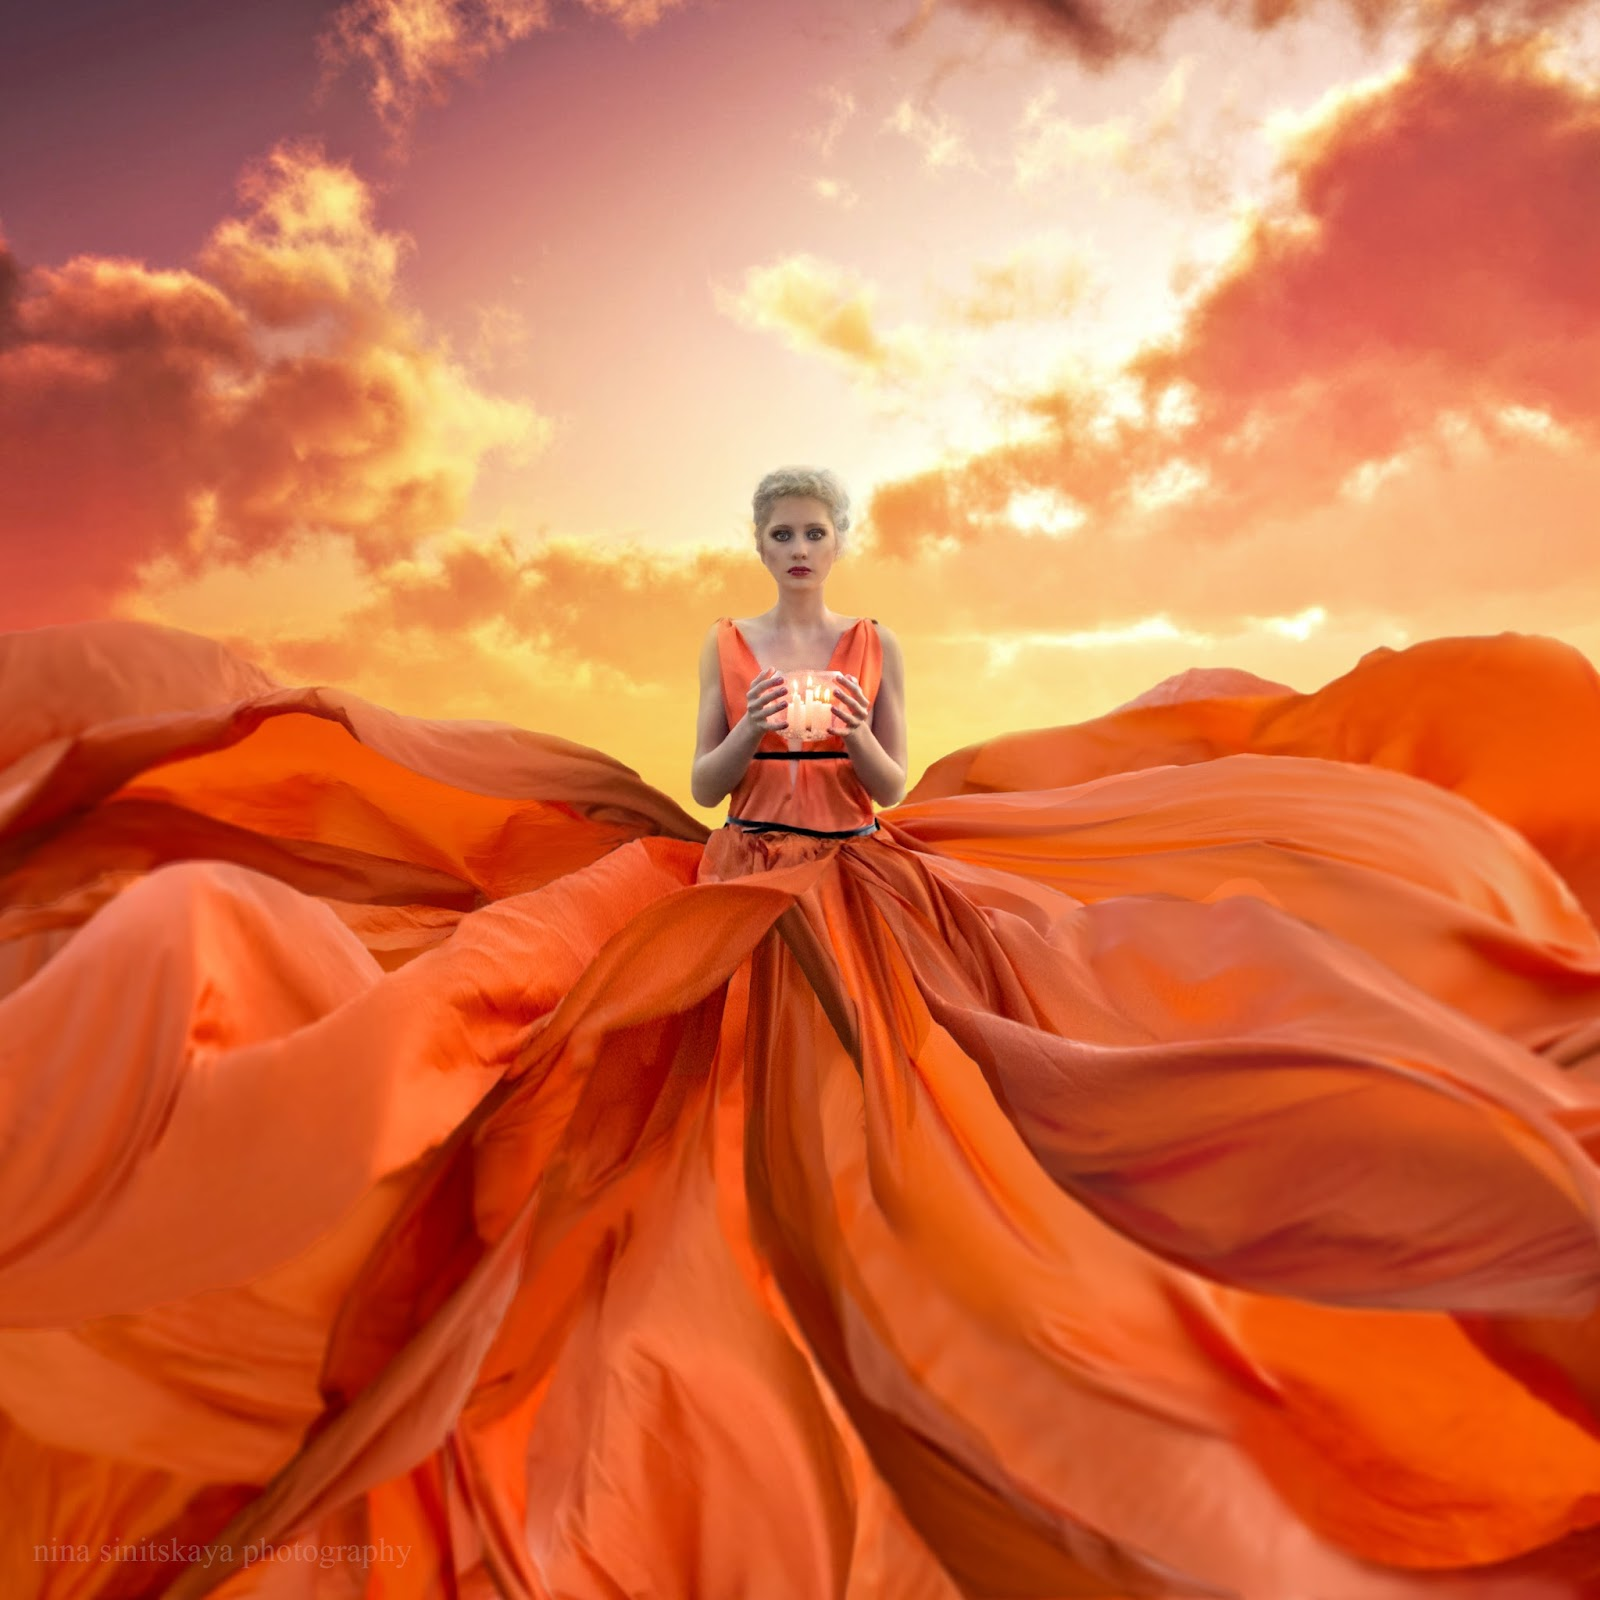 surrealistic flowing dress of the girl